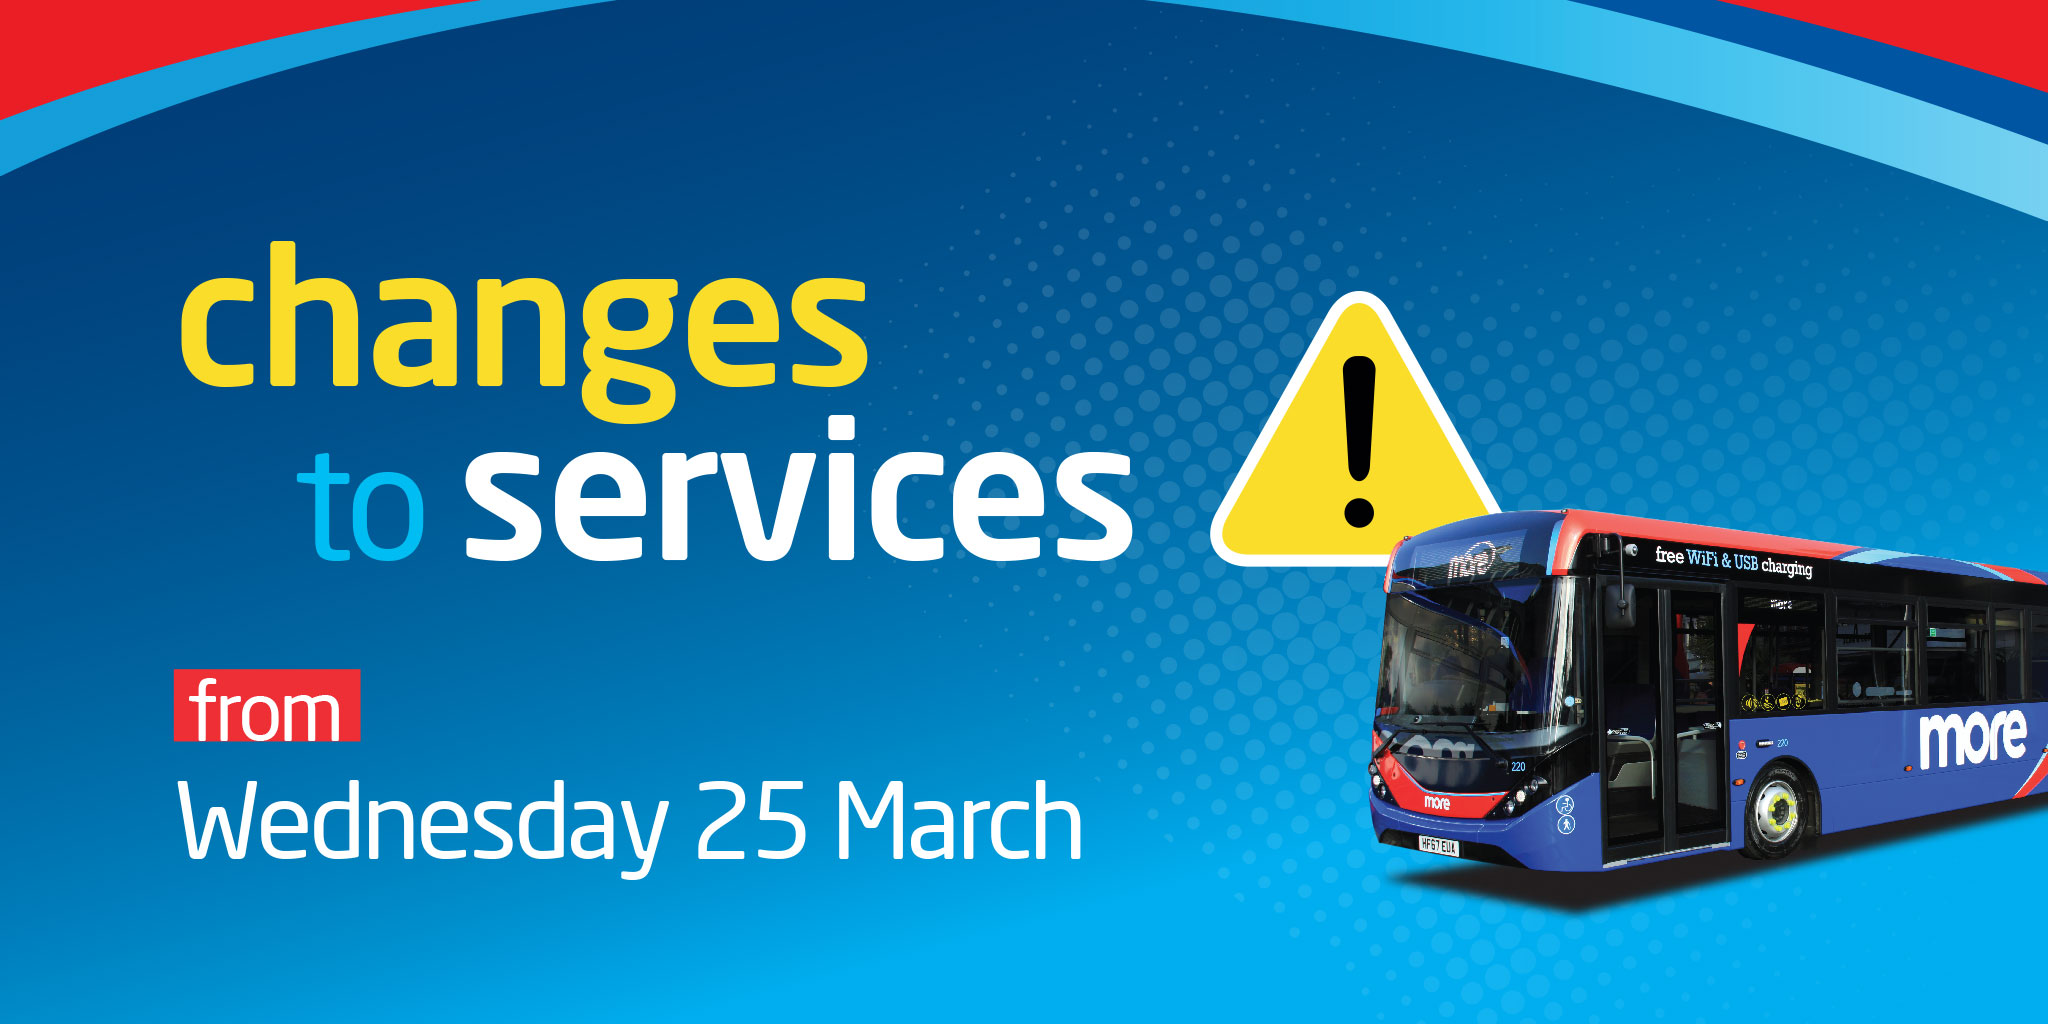 Image reading 'changes to services from Wednesday 25 March'